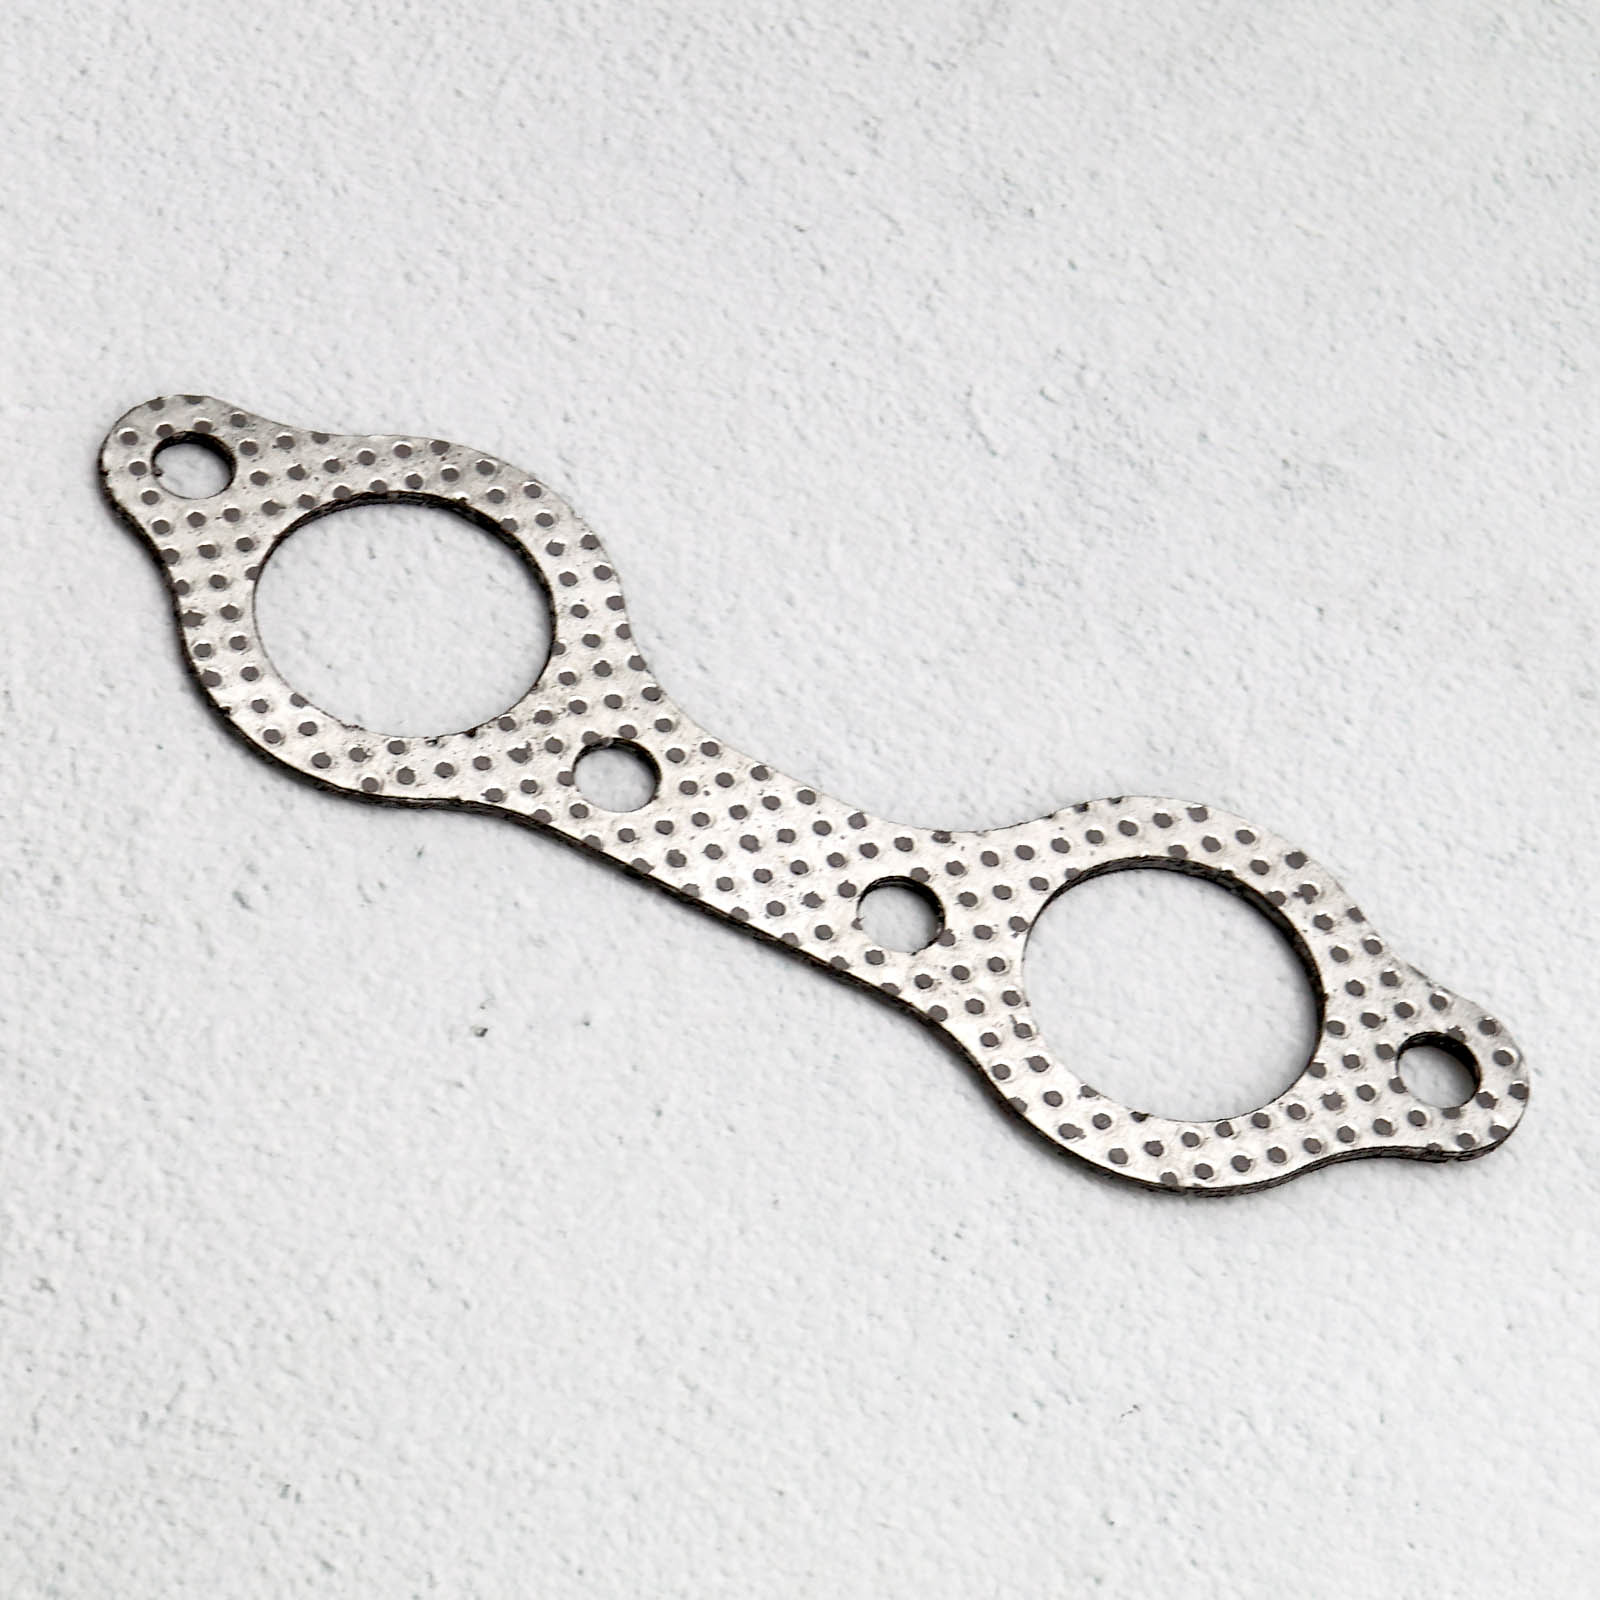 Scooter Exhaust Manifold Gasket Replacement for Polaris